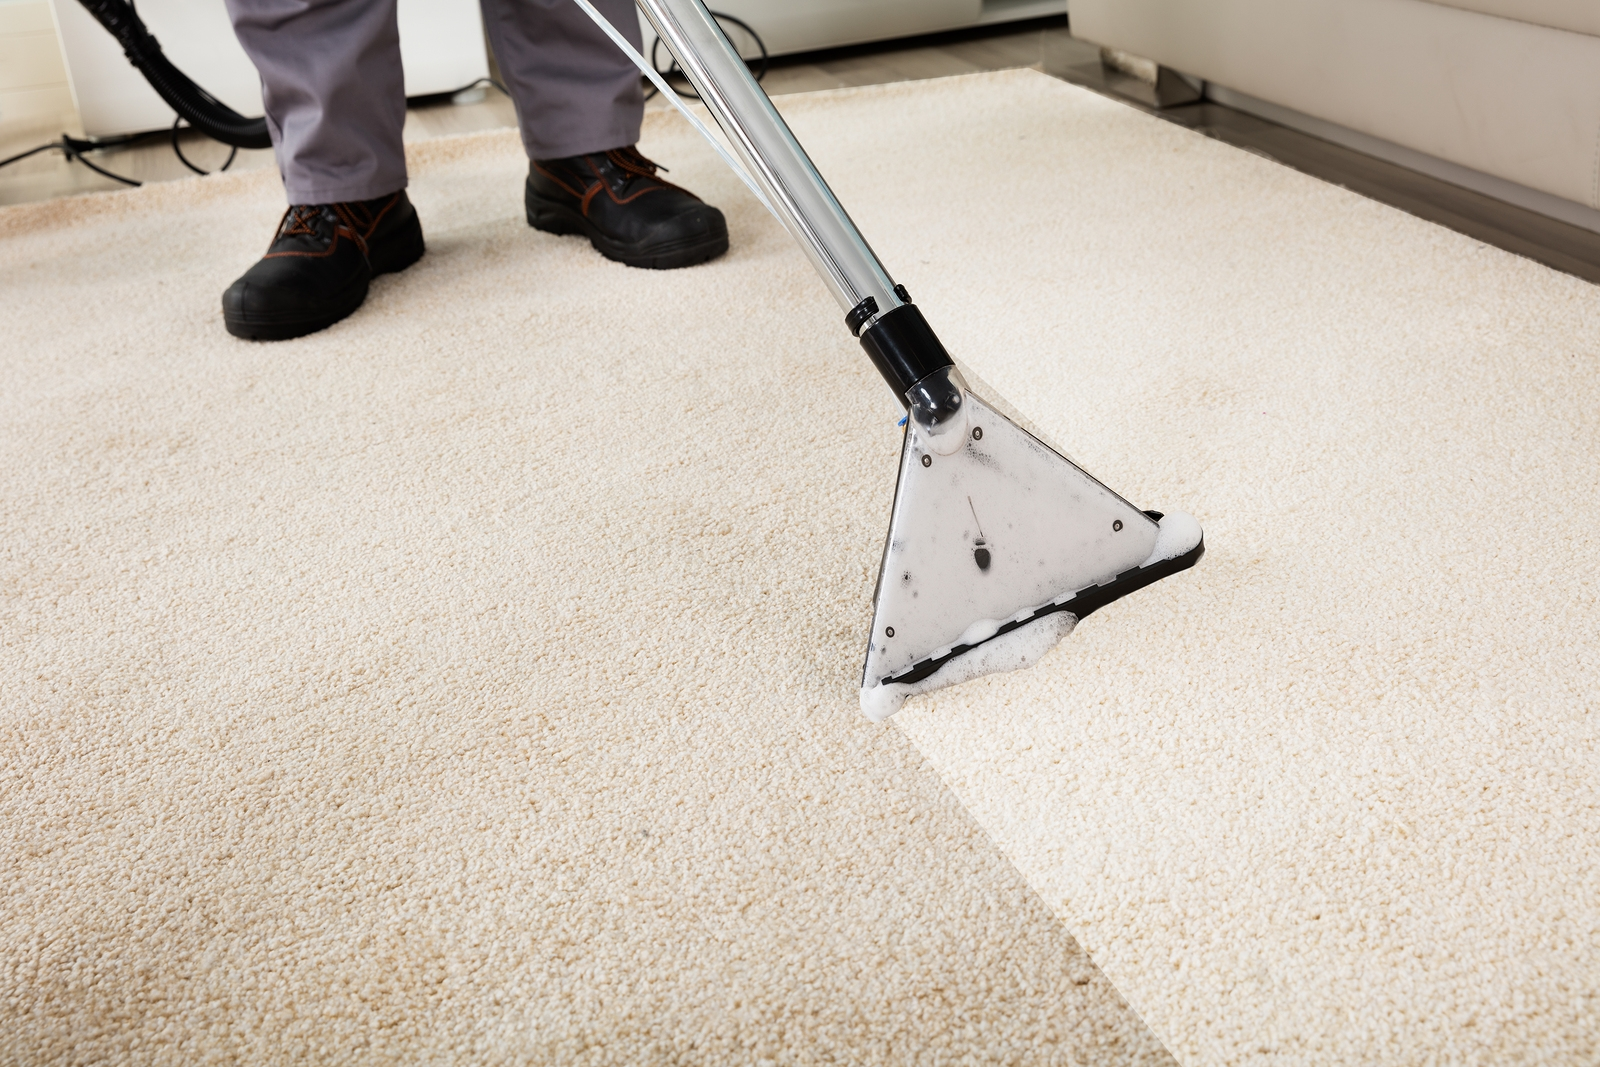 Carpet Cleaning in Toms River - How Hot Water Extraction Works